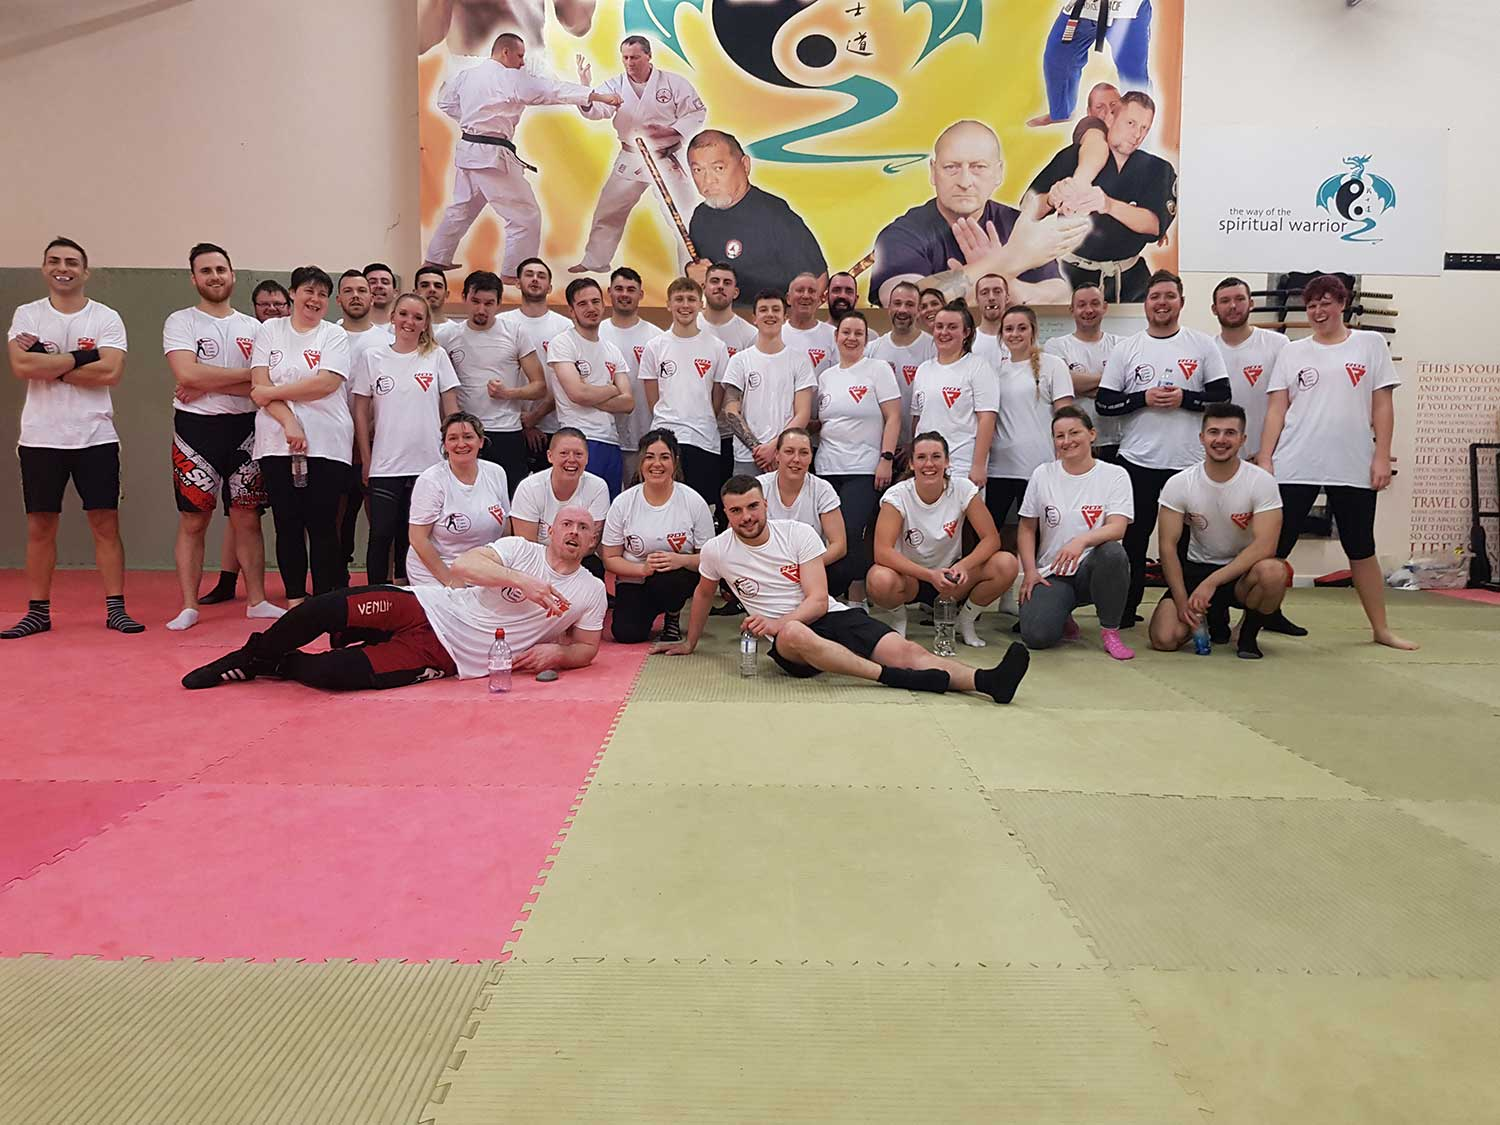 MARTIAL ARTS in Coventry at The Way of the Spiritual Warrior Dojo